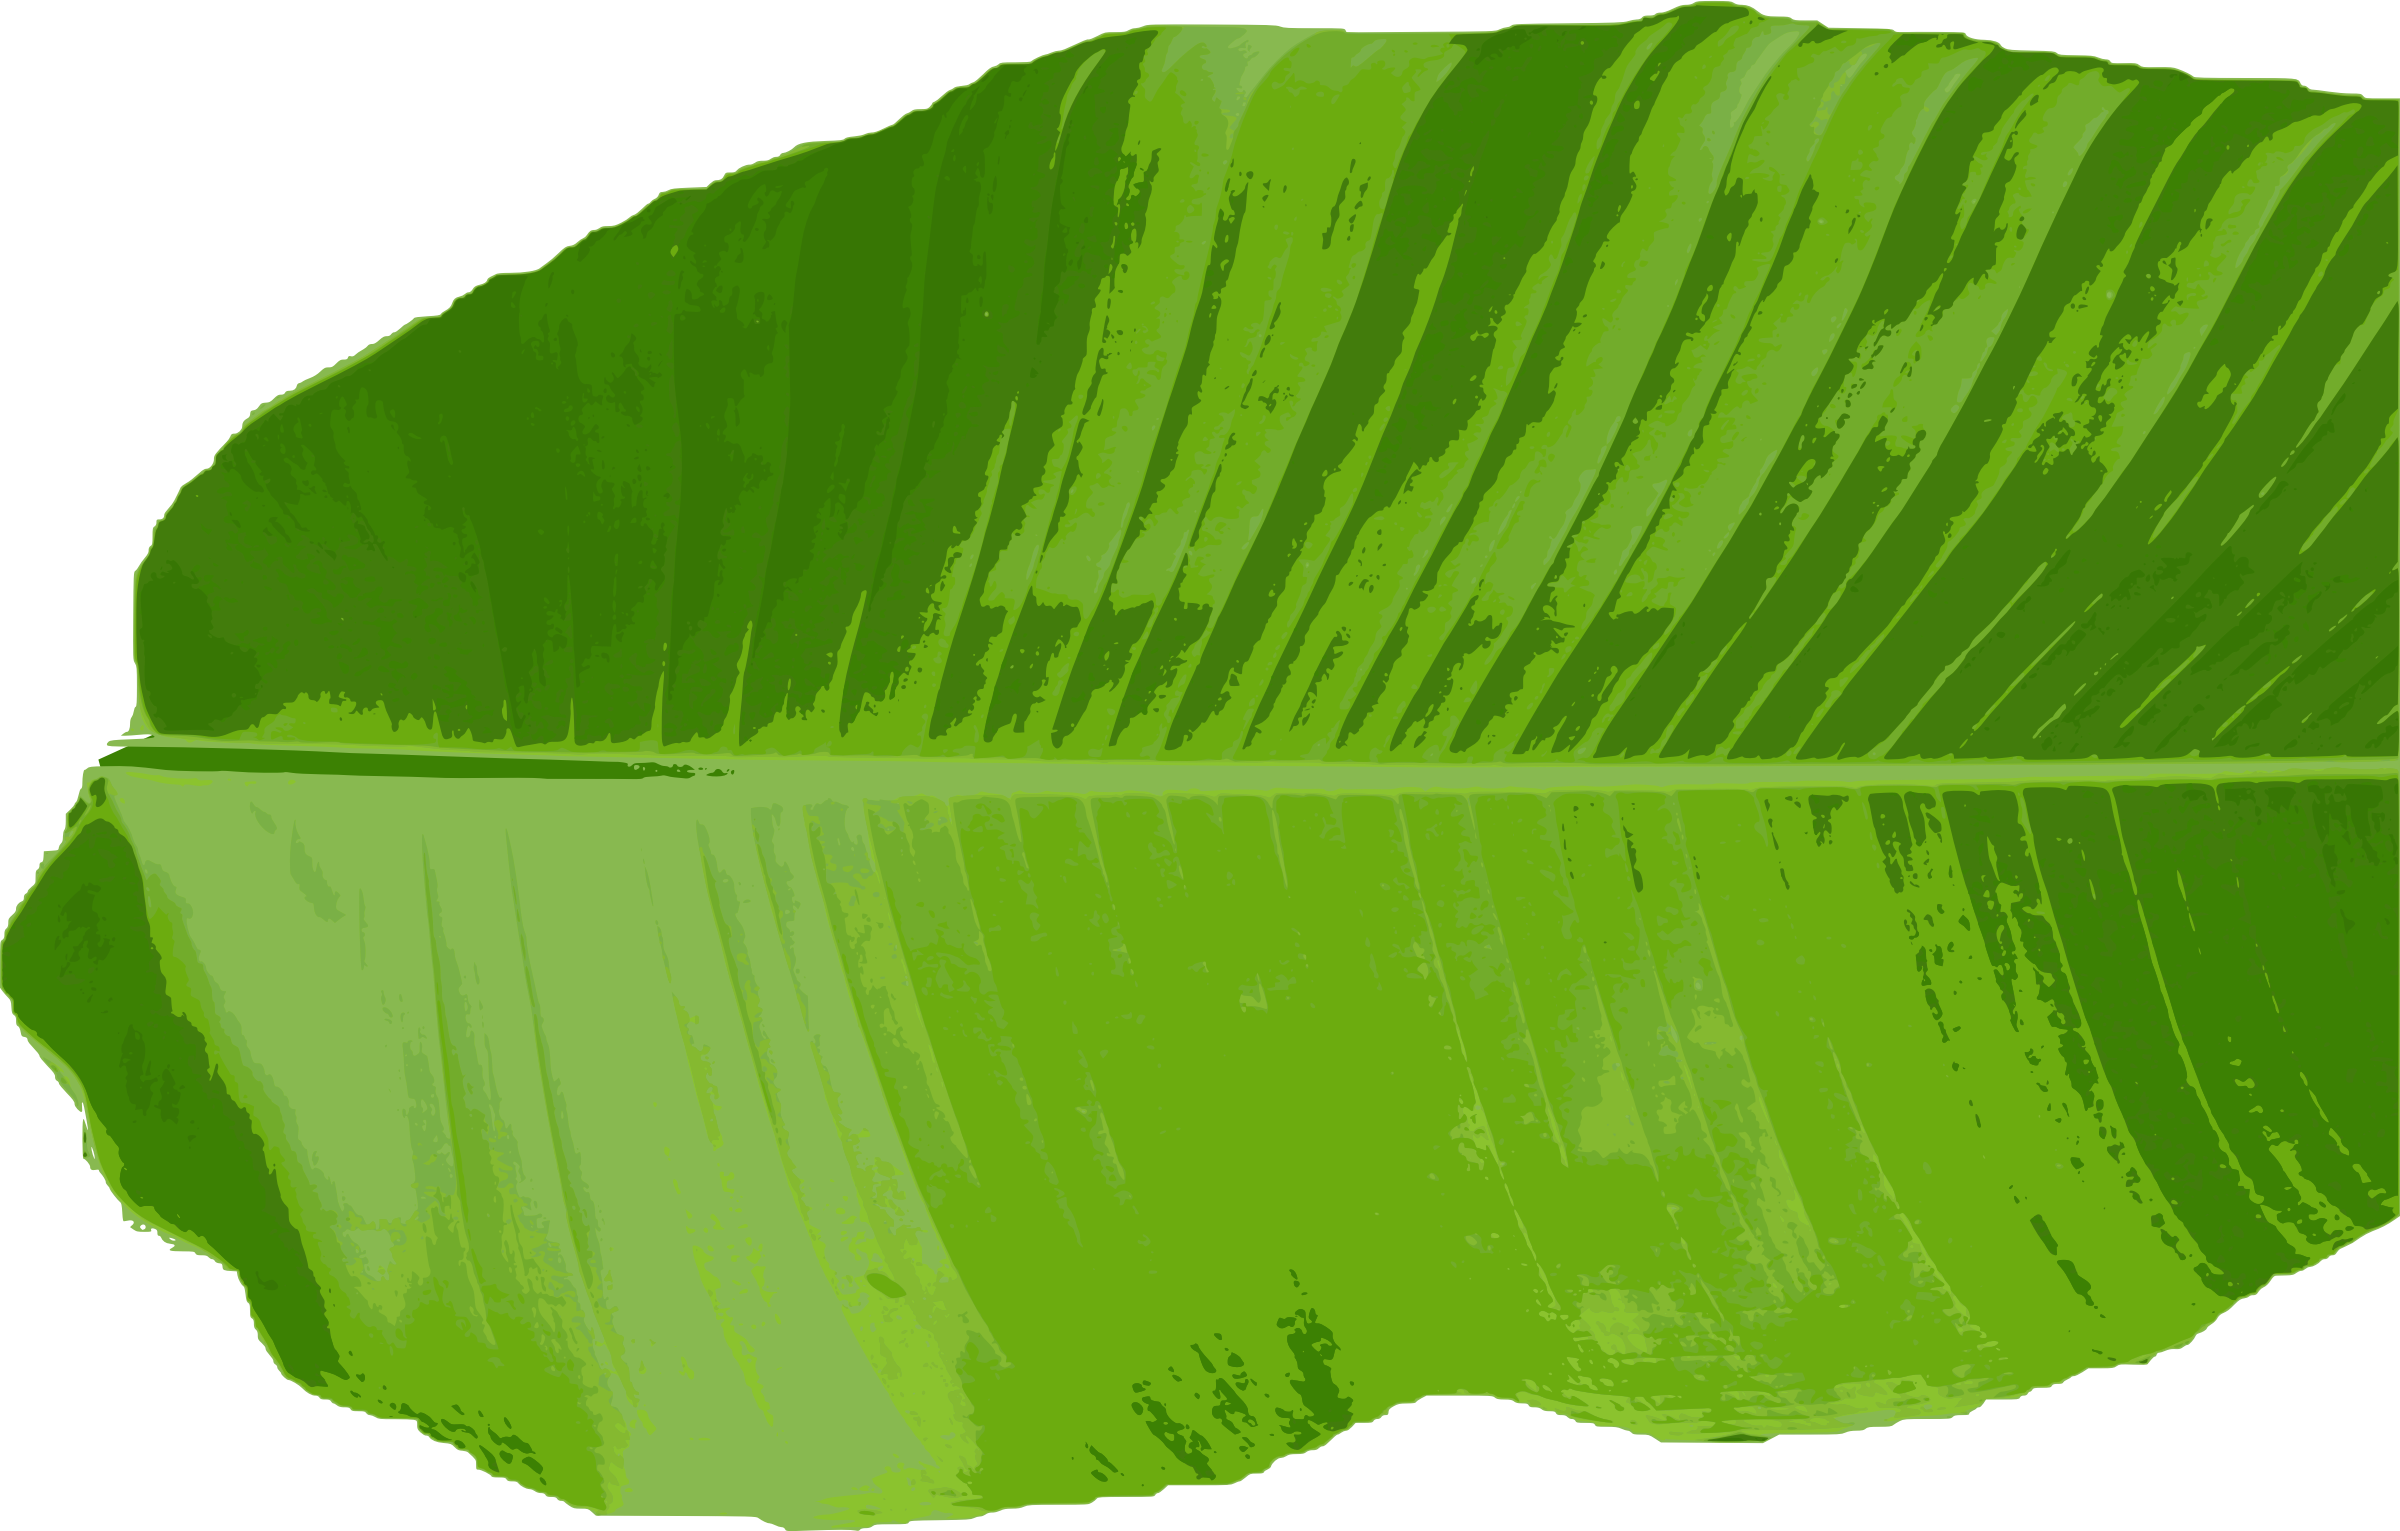 Banana leaves png. Leaf thai cuisine clip